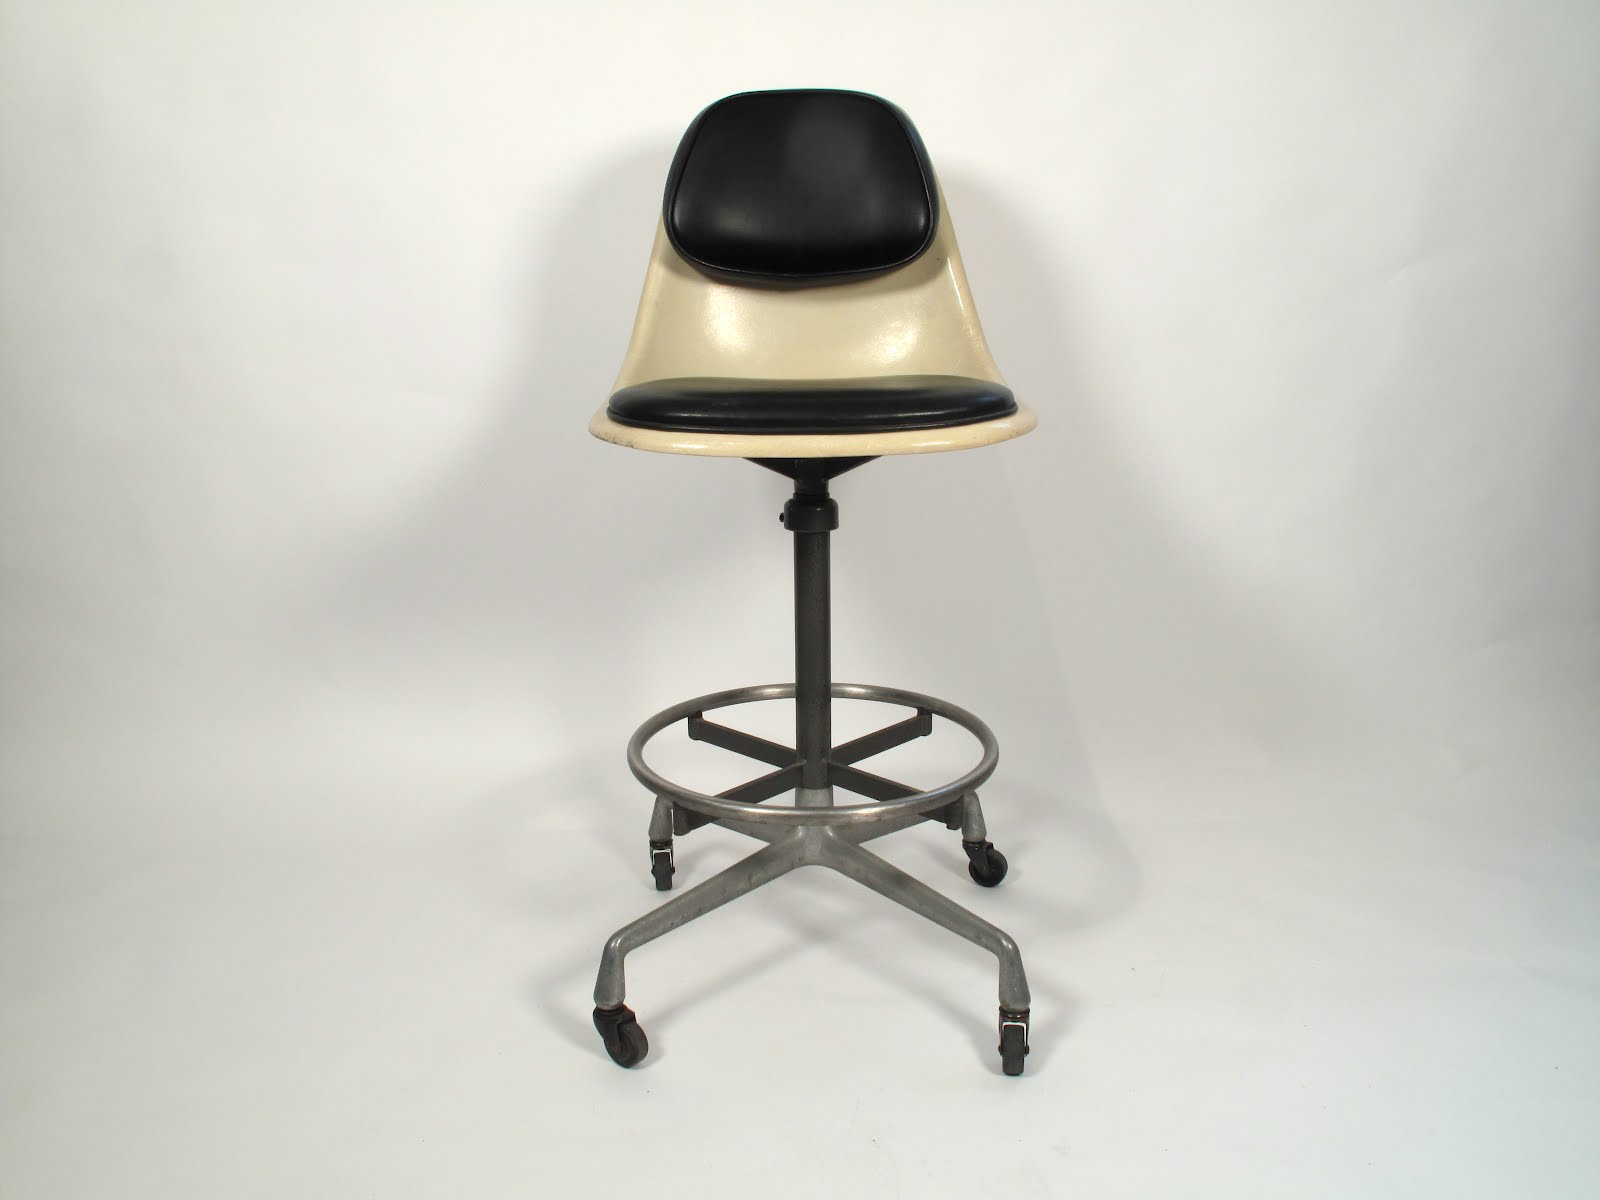 just in modern charles eames 'psc' drafting stool 's - charles eames 'psc' drafting stool 's